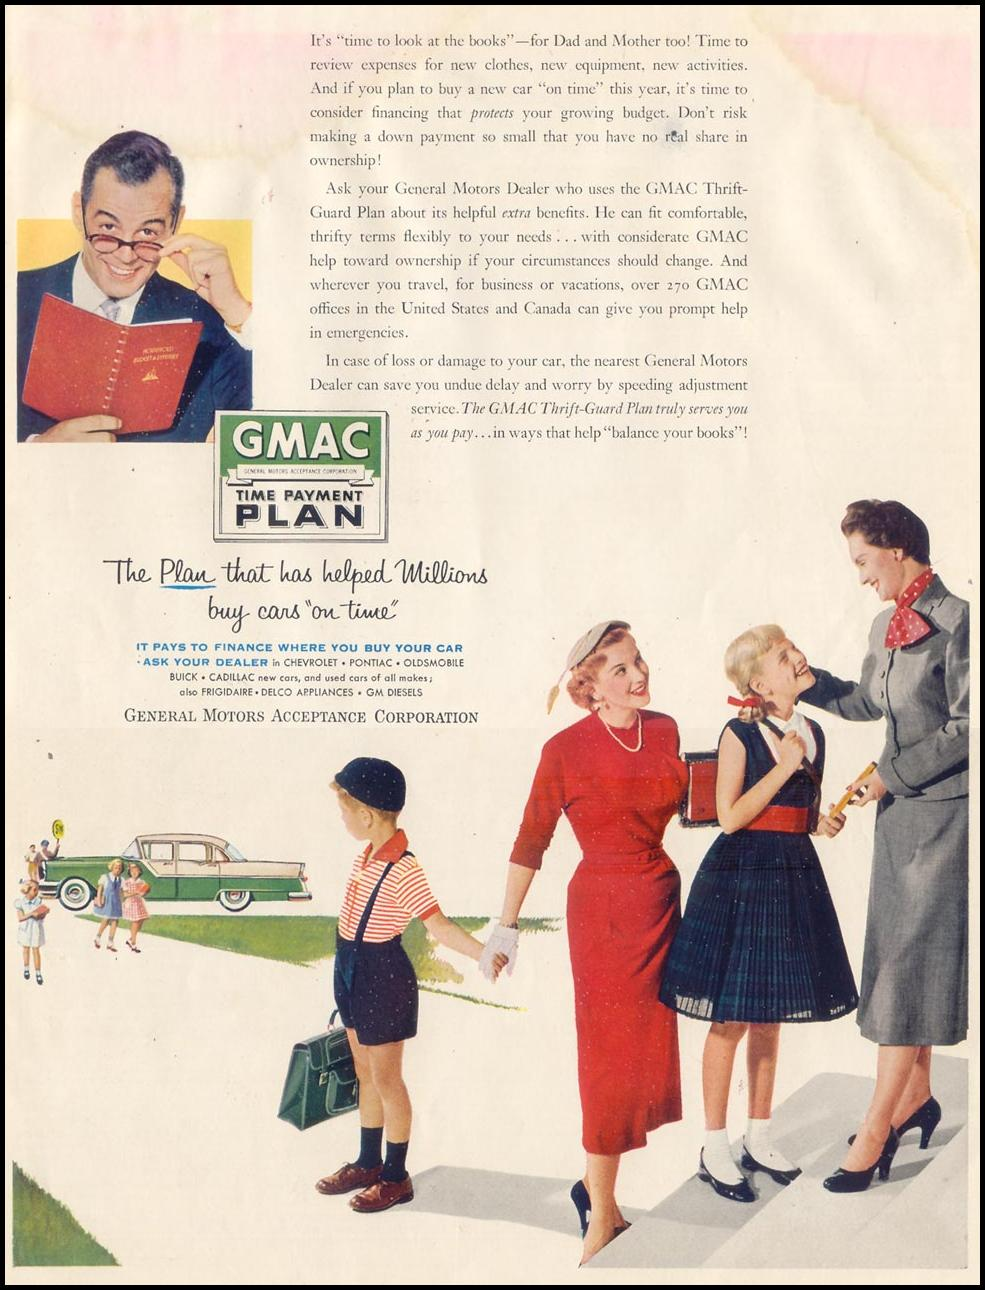 GMAC TIME PAYMENT PLAN SATURDAY EVENING POST 09/03/1955 INSIDE BACK